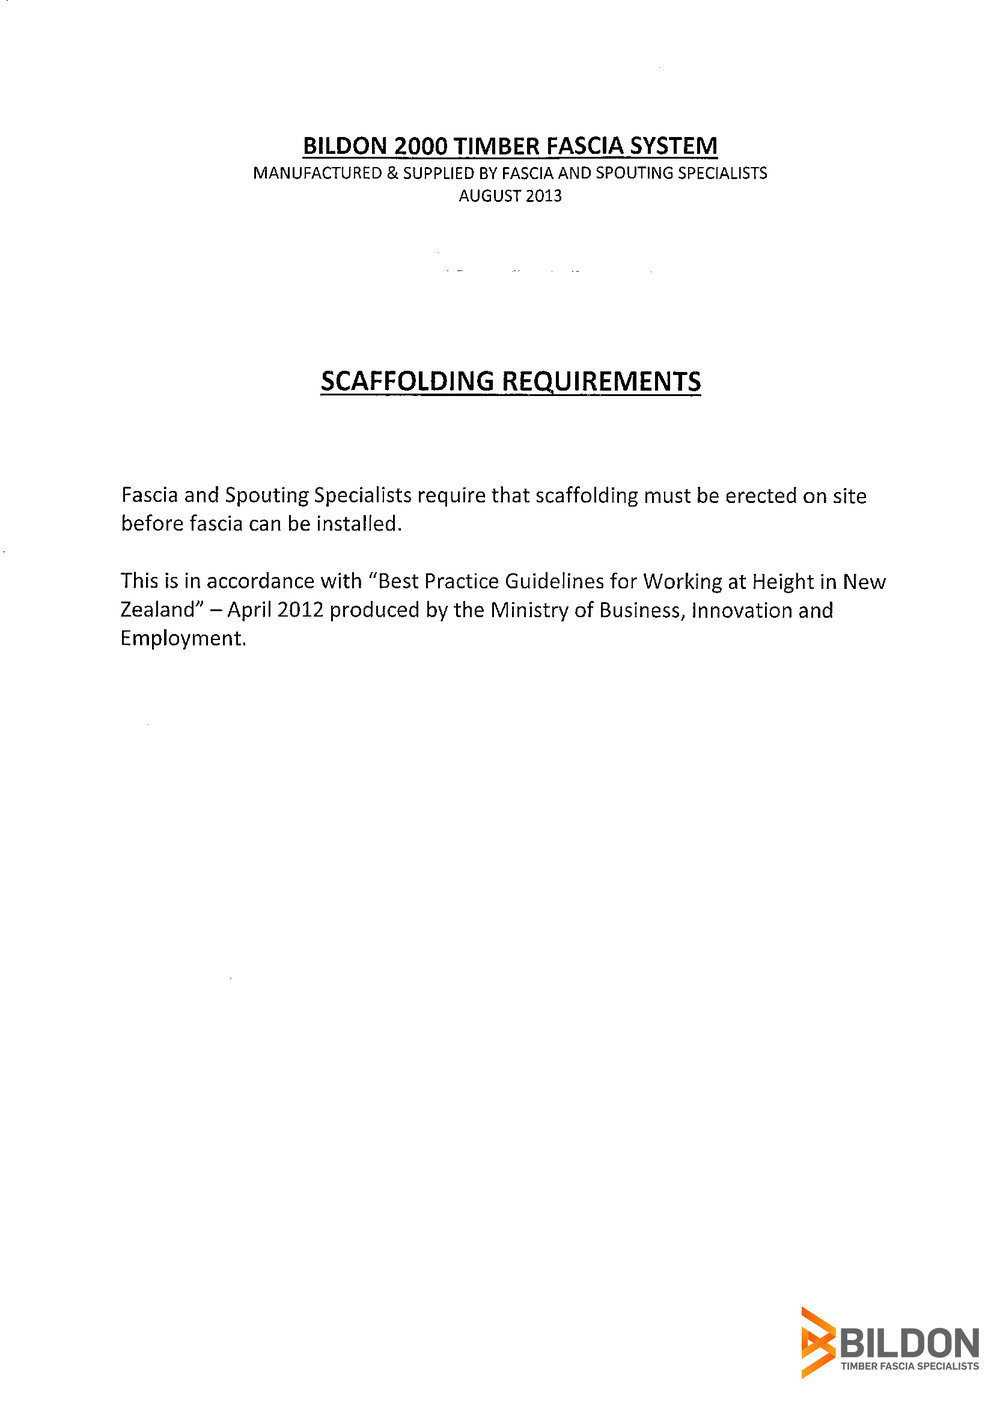 Scaffolding Requirements.jpg